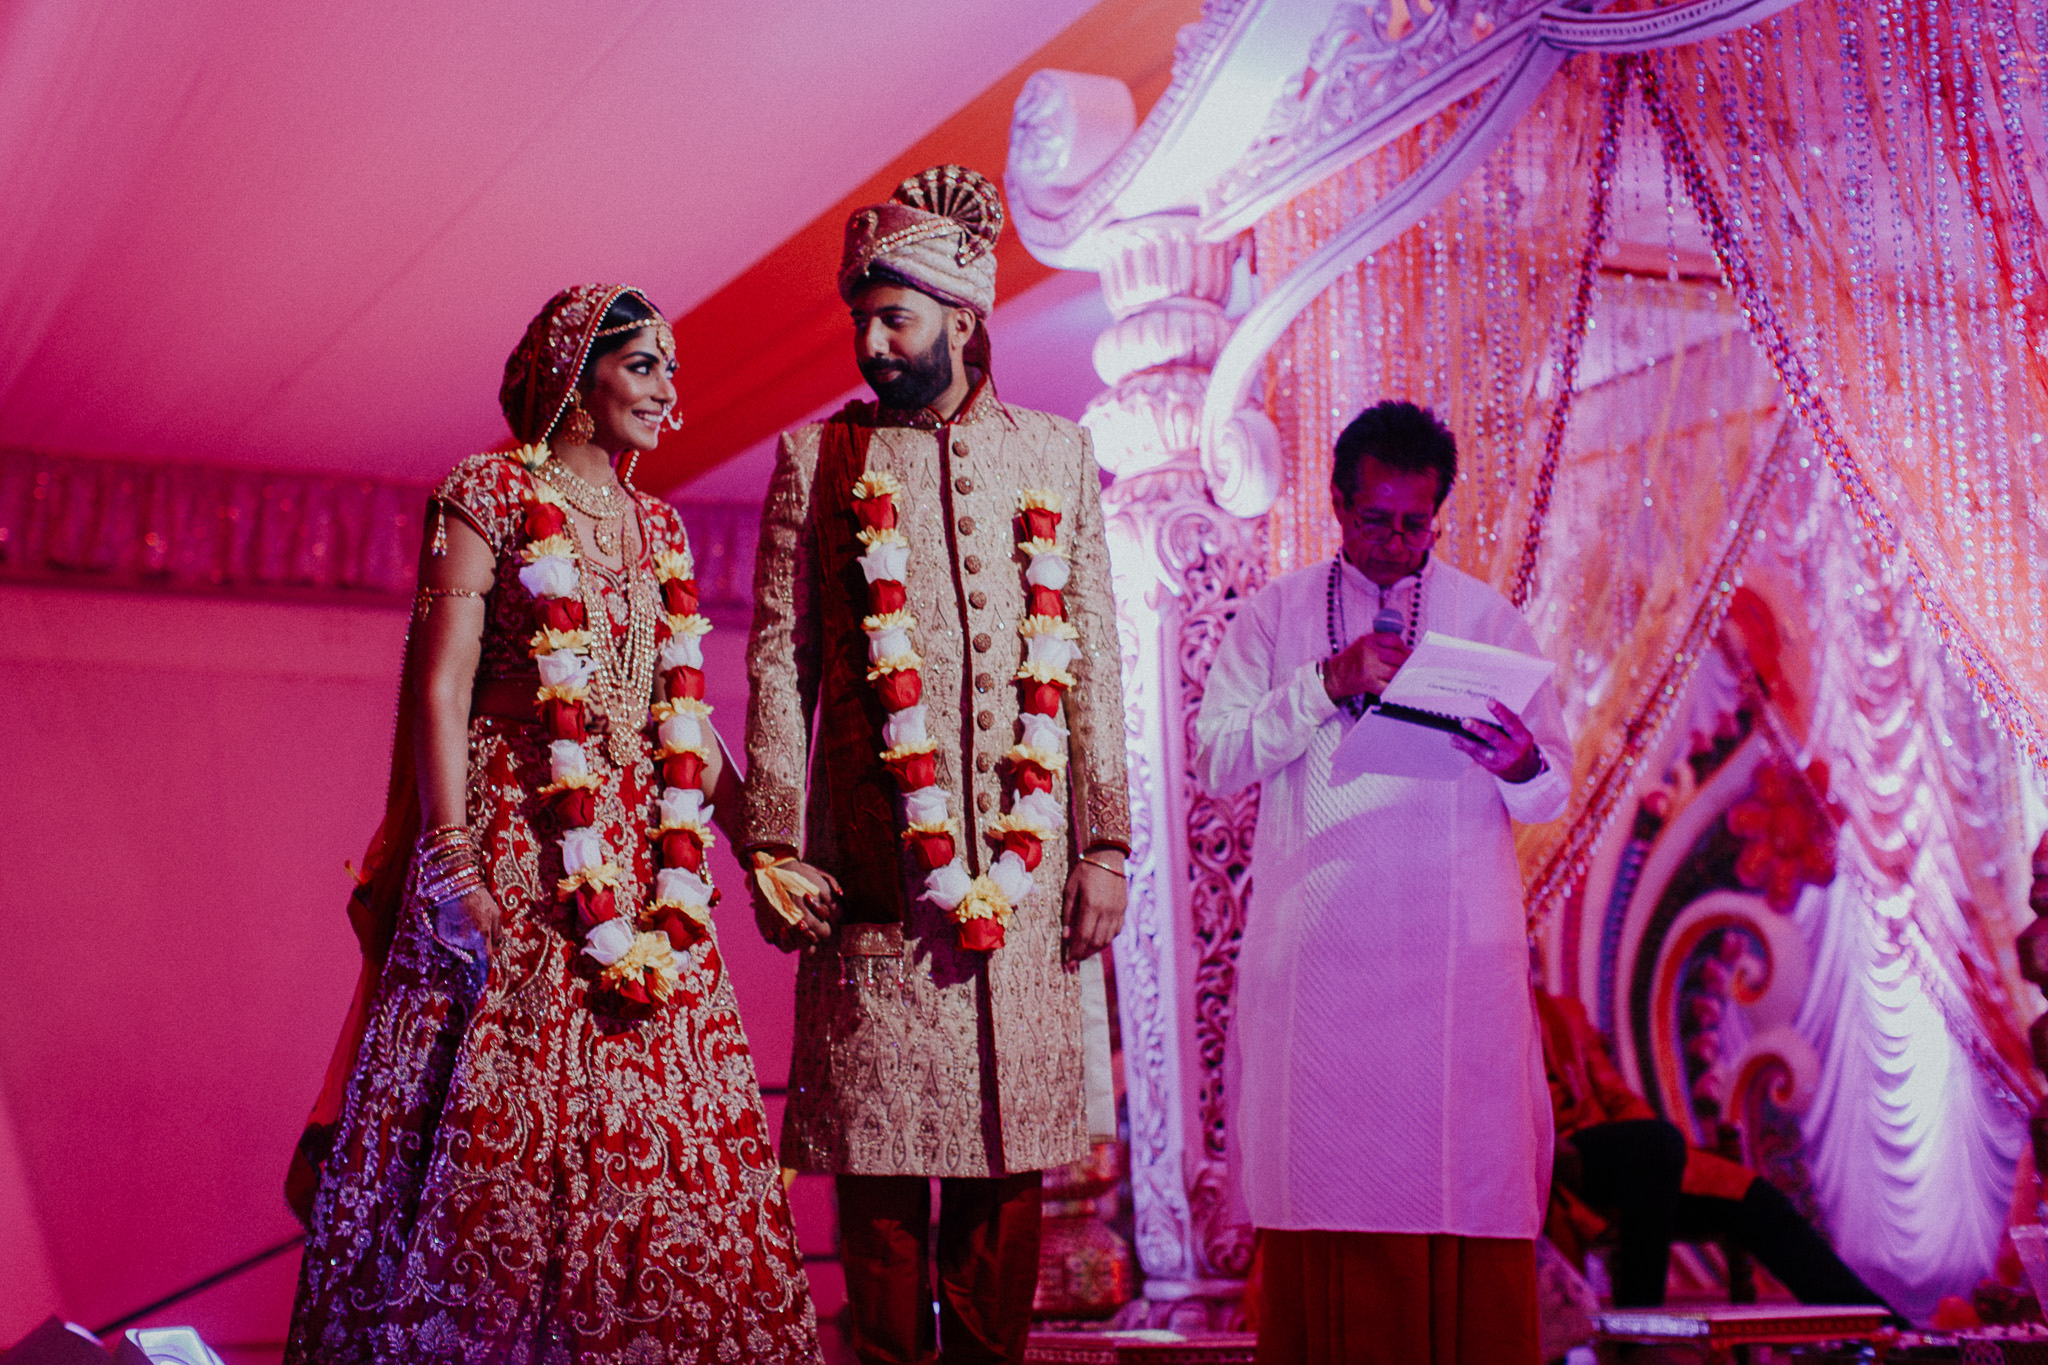 Hannah + Ashton - {Hindu Ceremony} wedding in Trinidad and Tobago